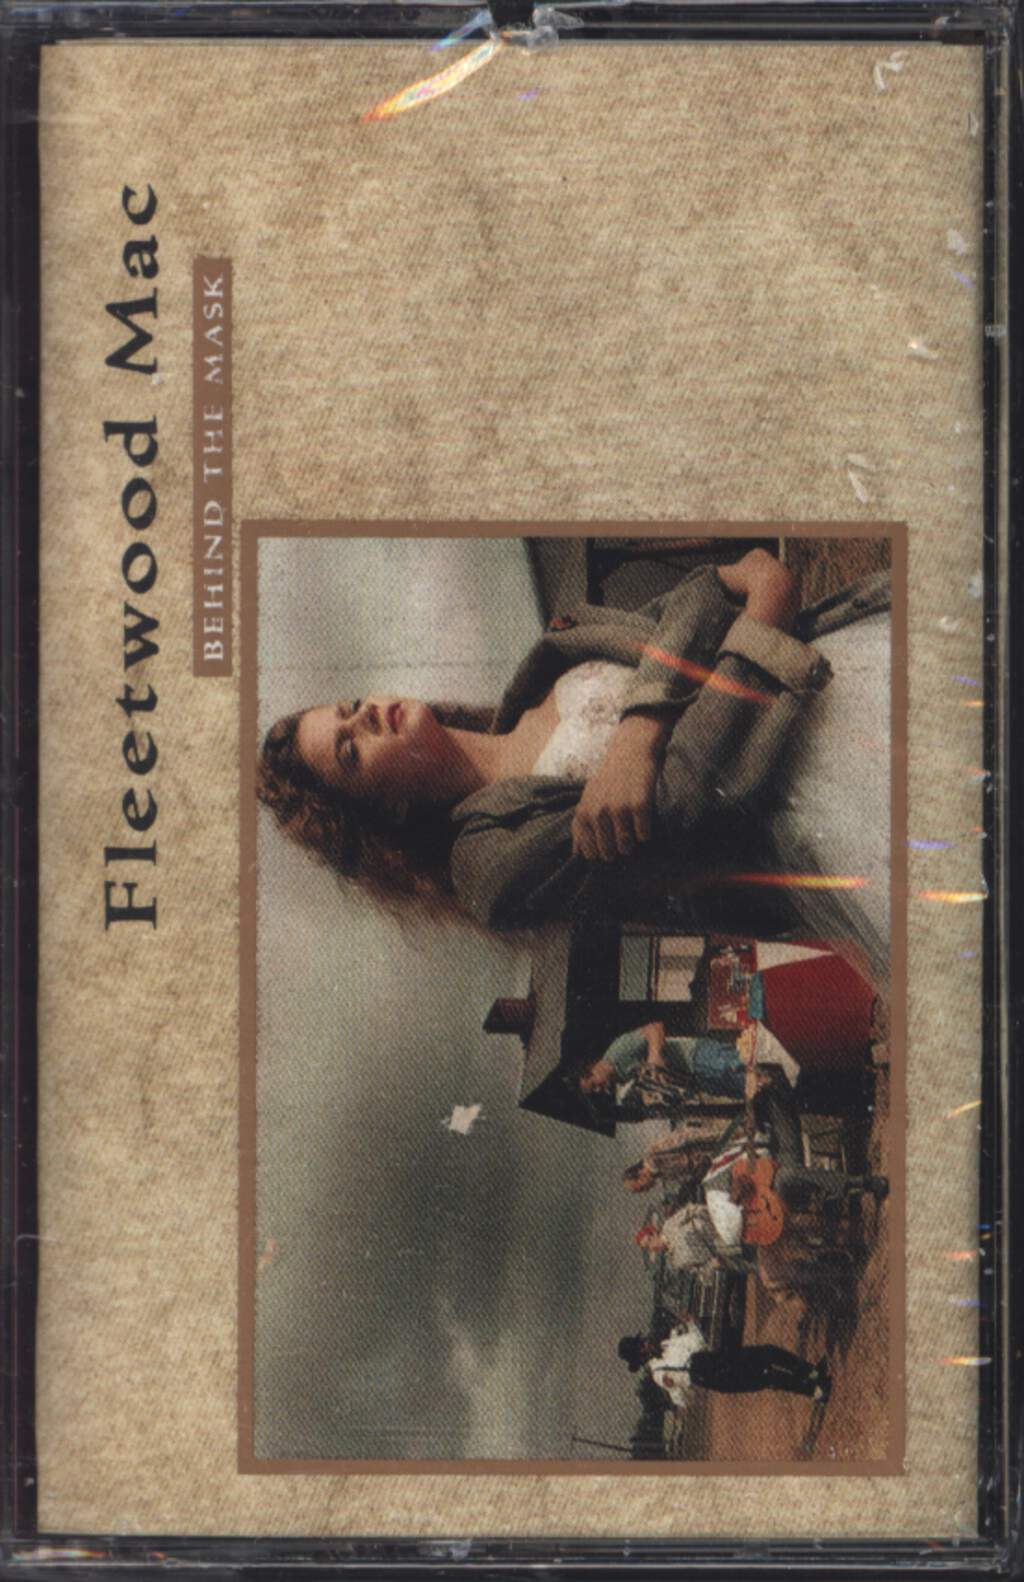 Fleetwood Mac: Behind The Mask, Compact Cassette